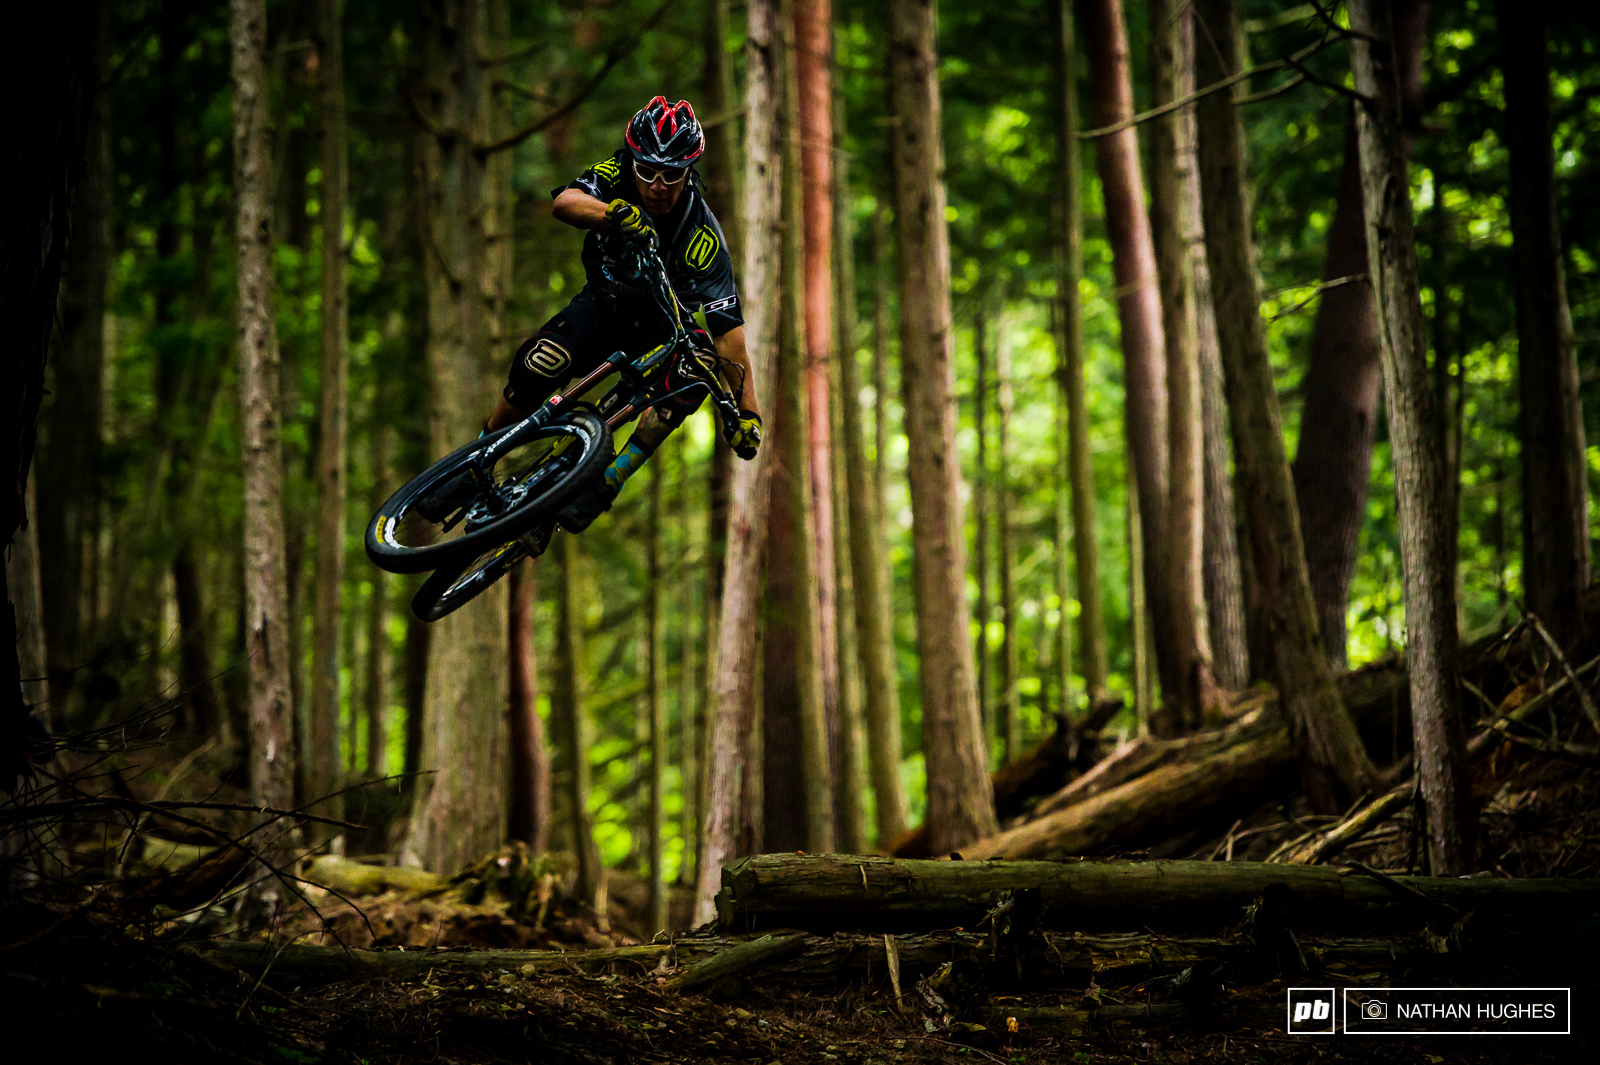 Bernado will find a gap where no one else would want to look. Enduro bike 30ft hip transfer deep in the forest.